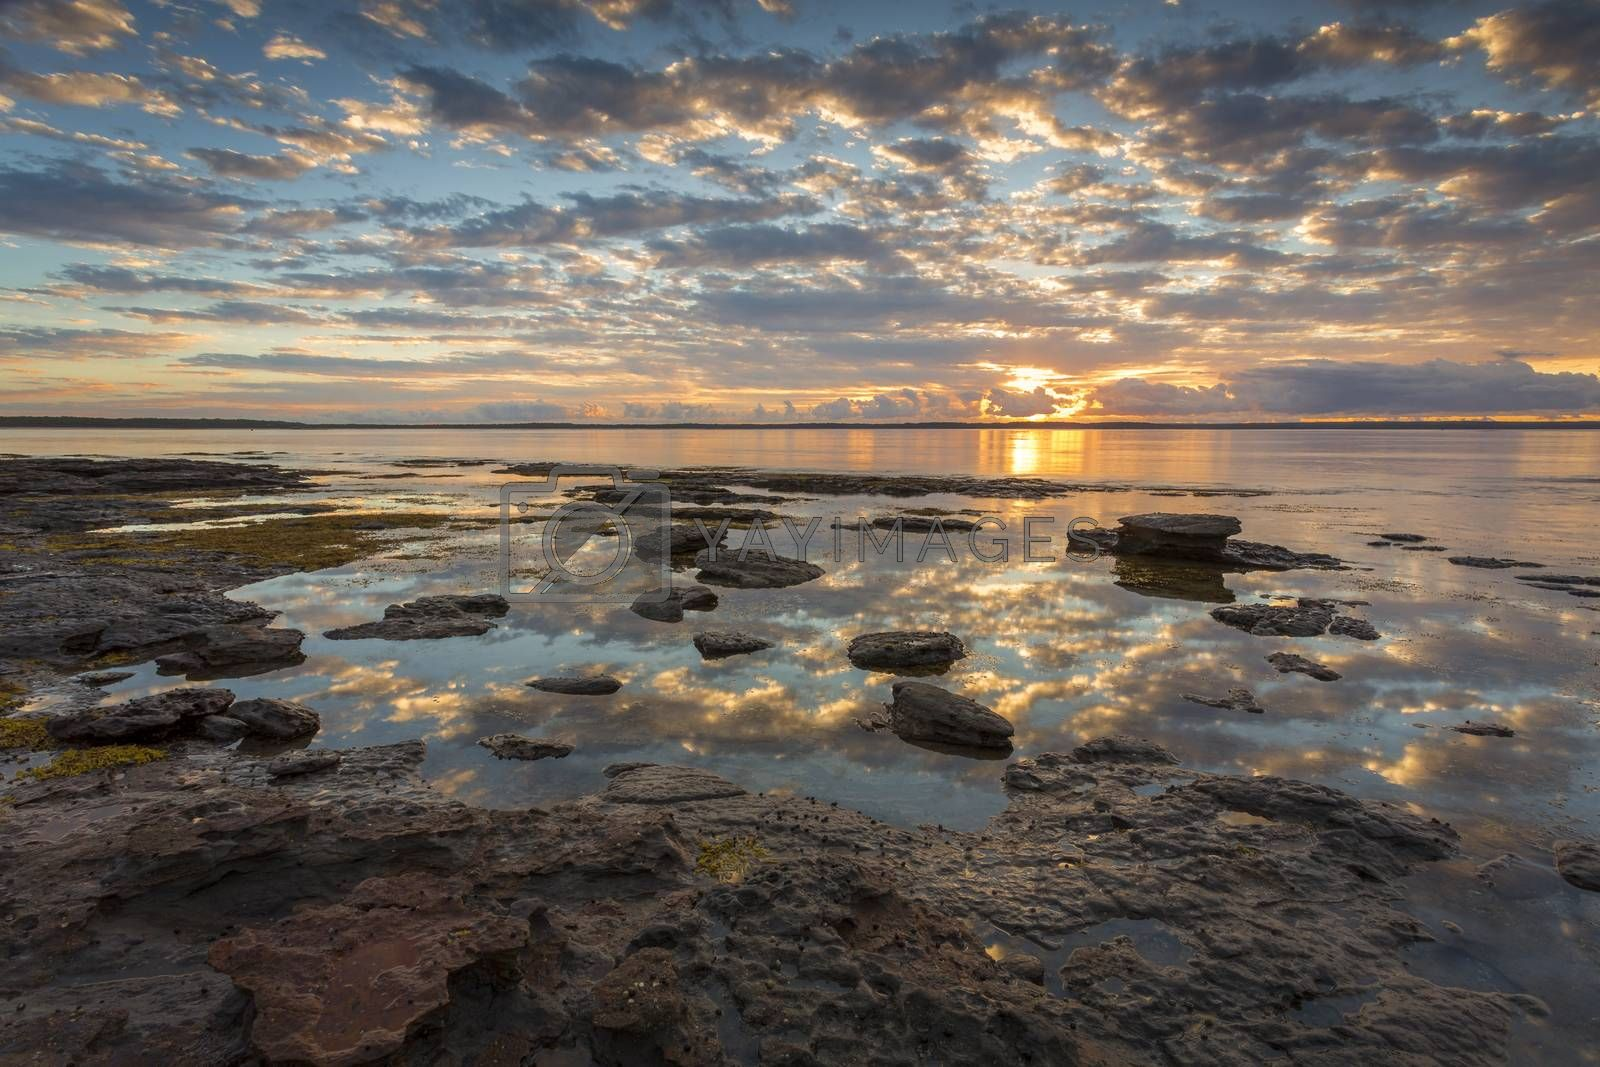 Beautiful sunrise reflecting across the bay at low tide.  Location  Callala Bay, part of Jervis Bay, Australia